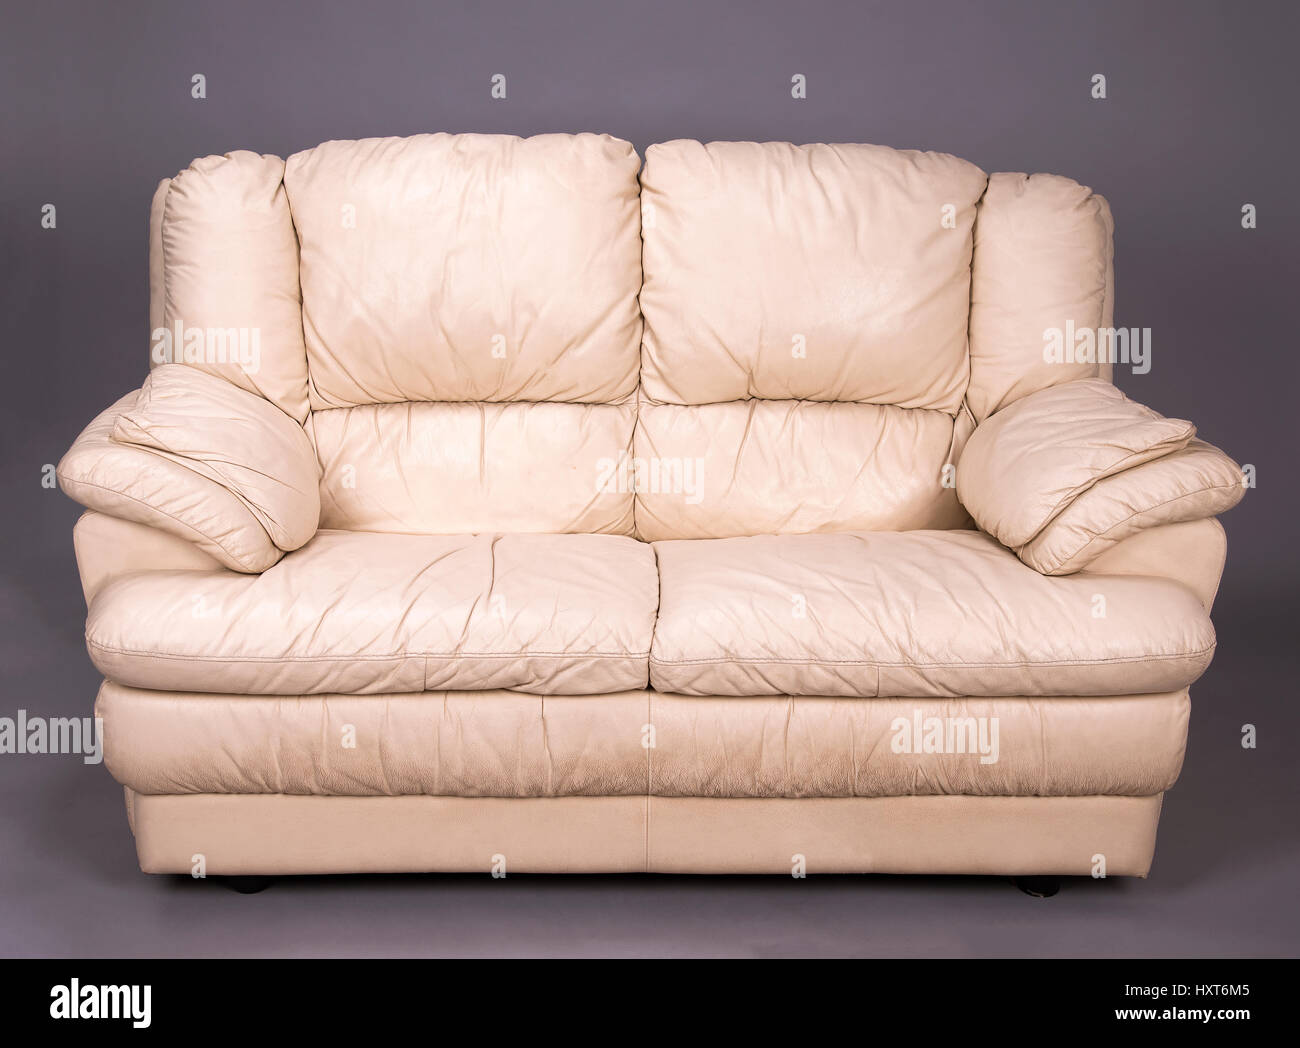 a grubby two seater cream colored leather sofa stock photo rh alamy com cream colored leather sofas for sale cream color leather reclining sofa